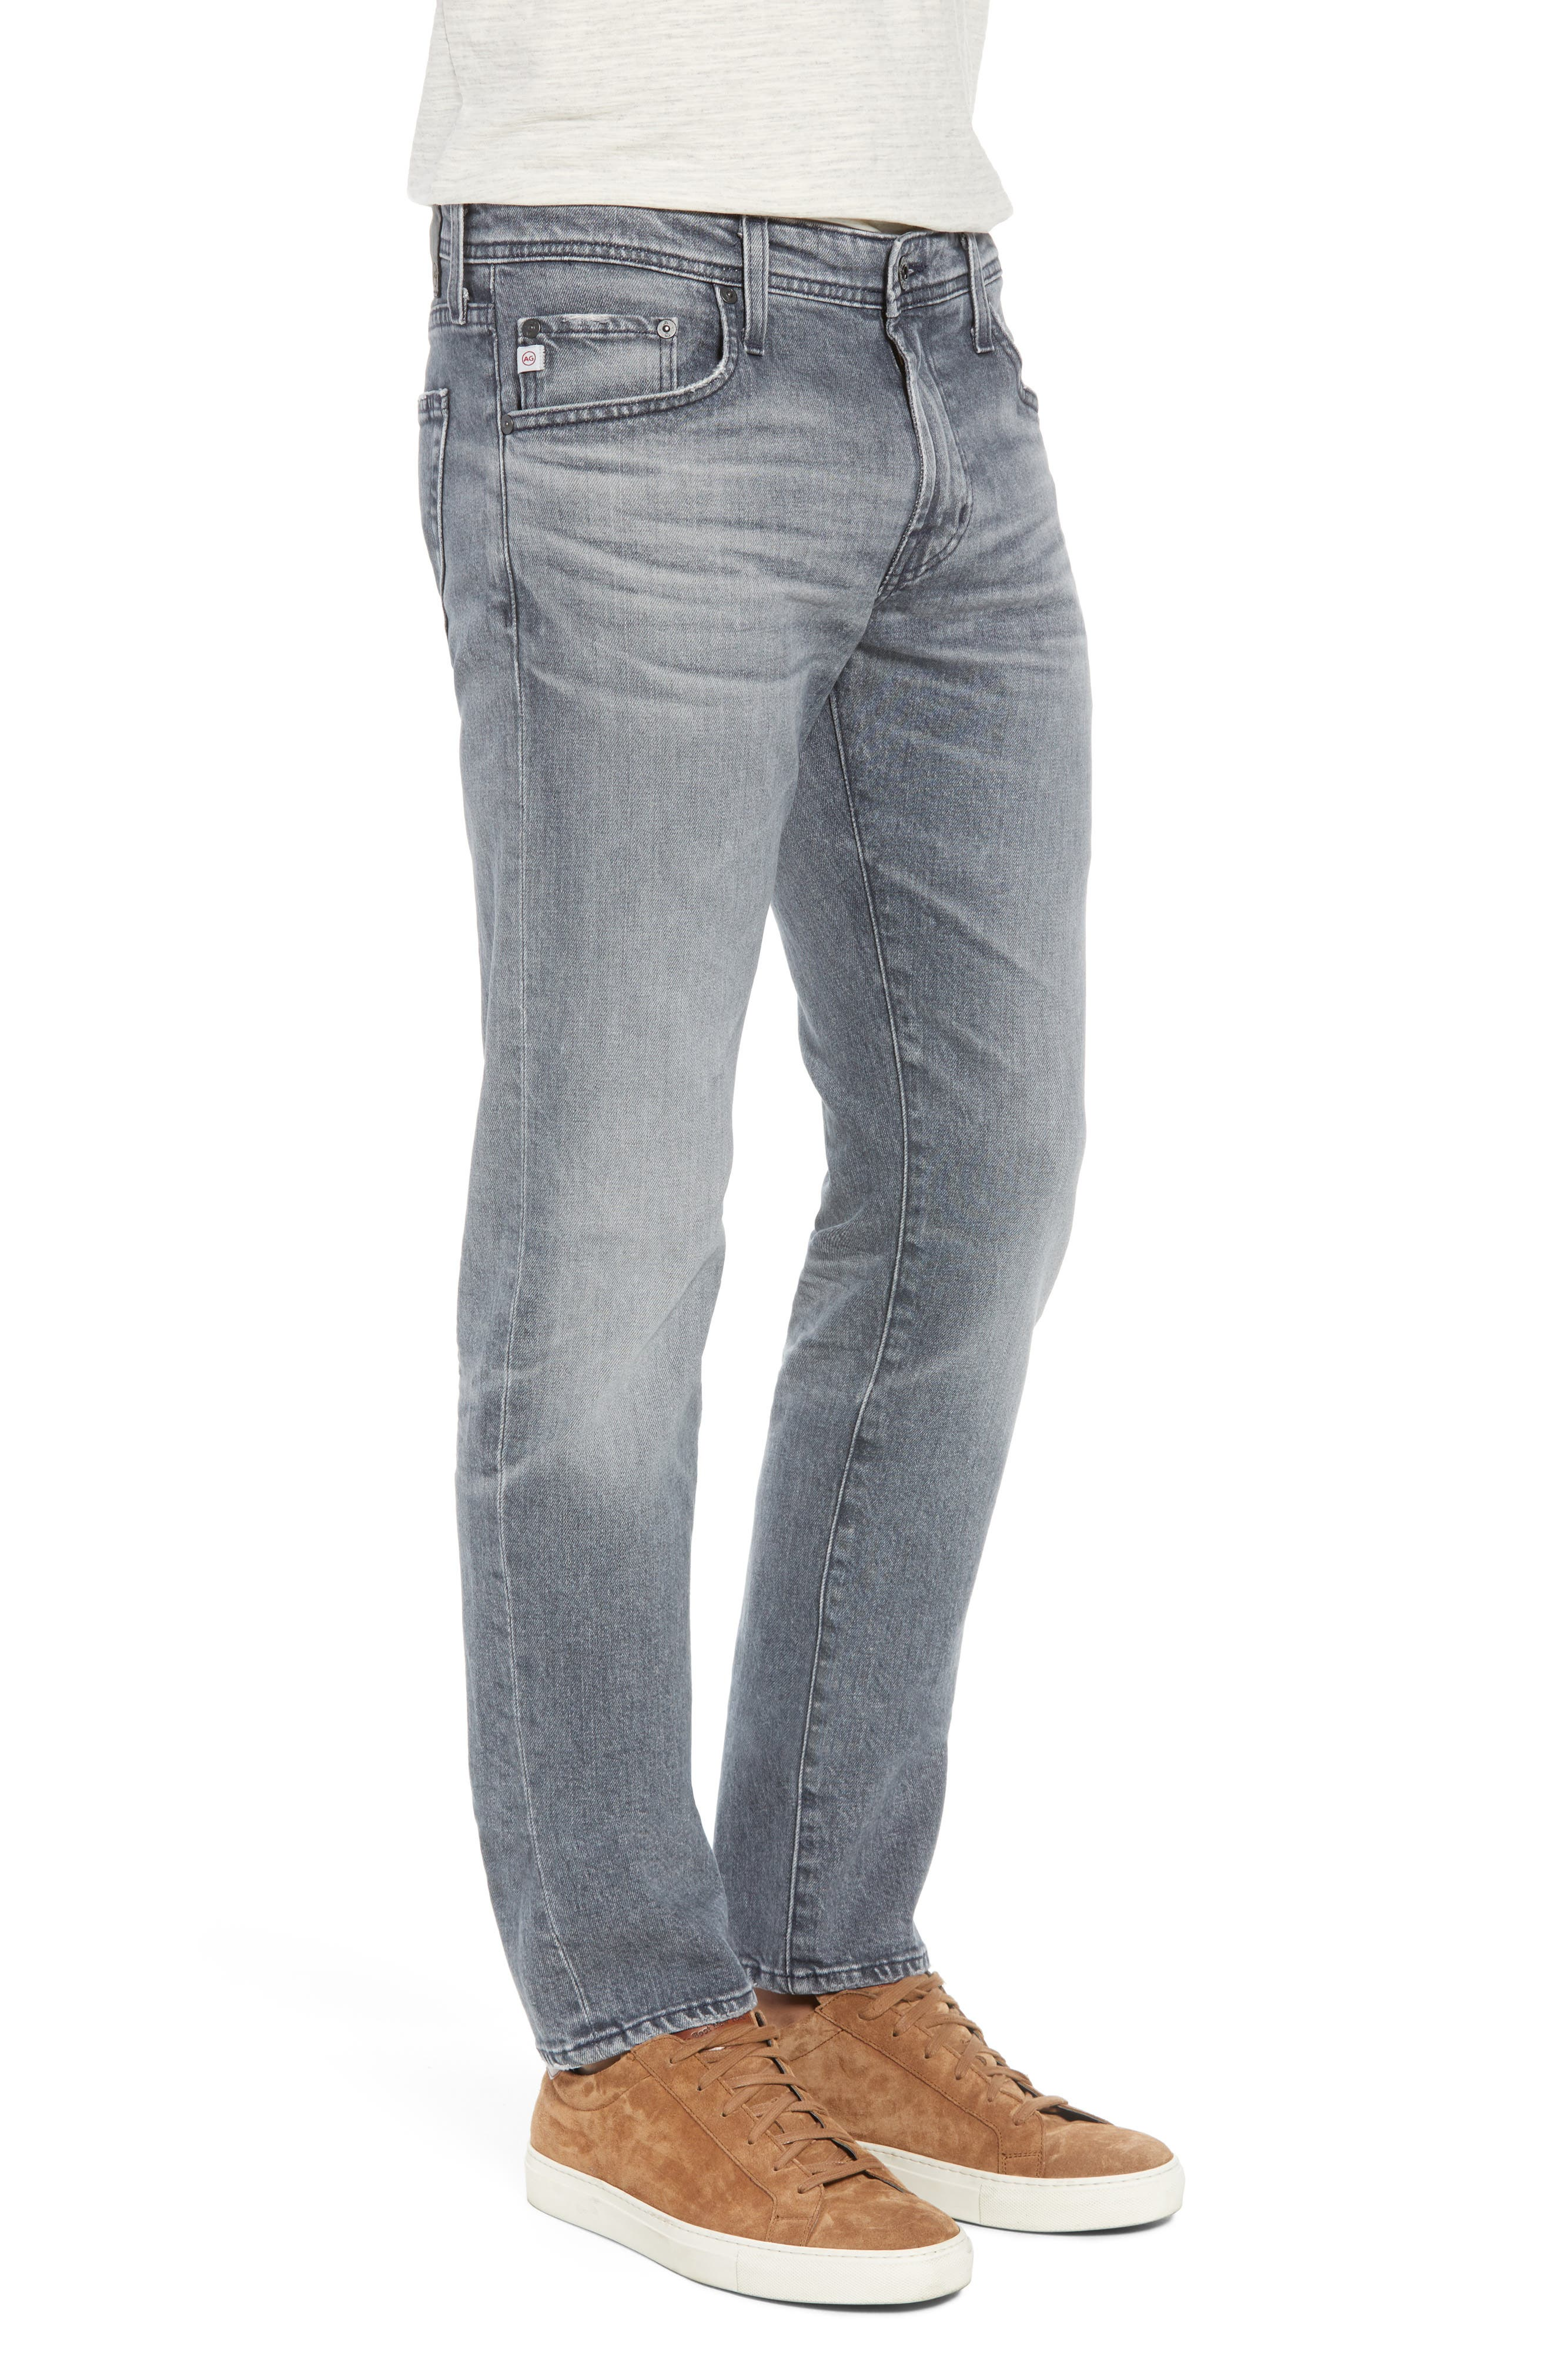 Tellis Slim Fit Jeans,                             Alternate thumbnail 3, color,                             020